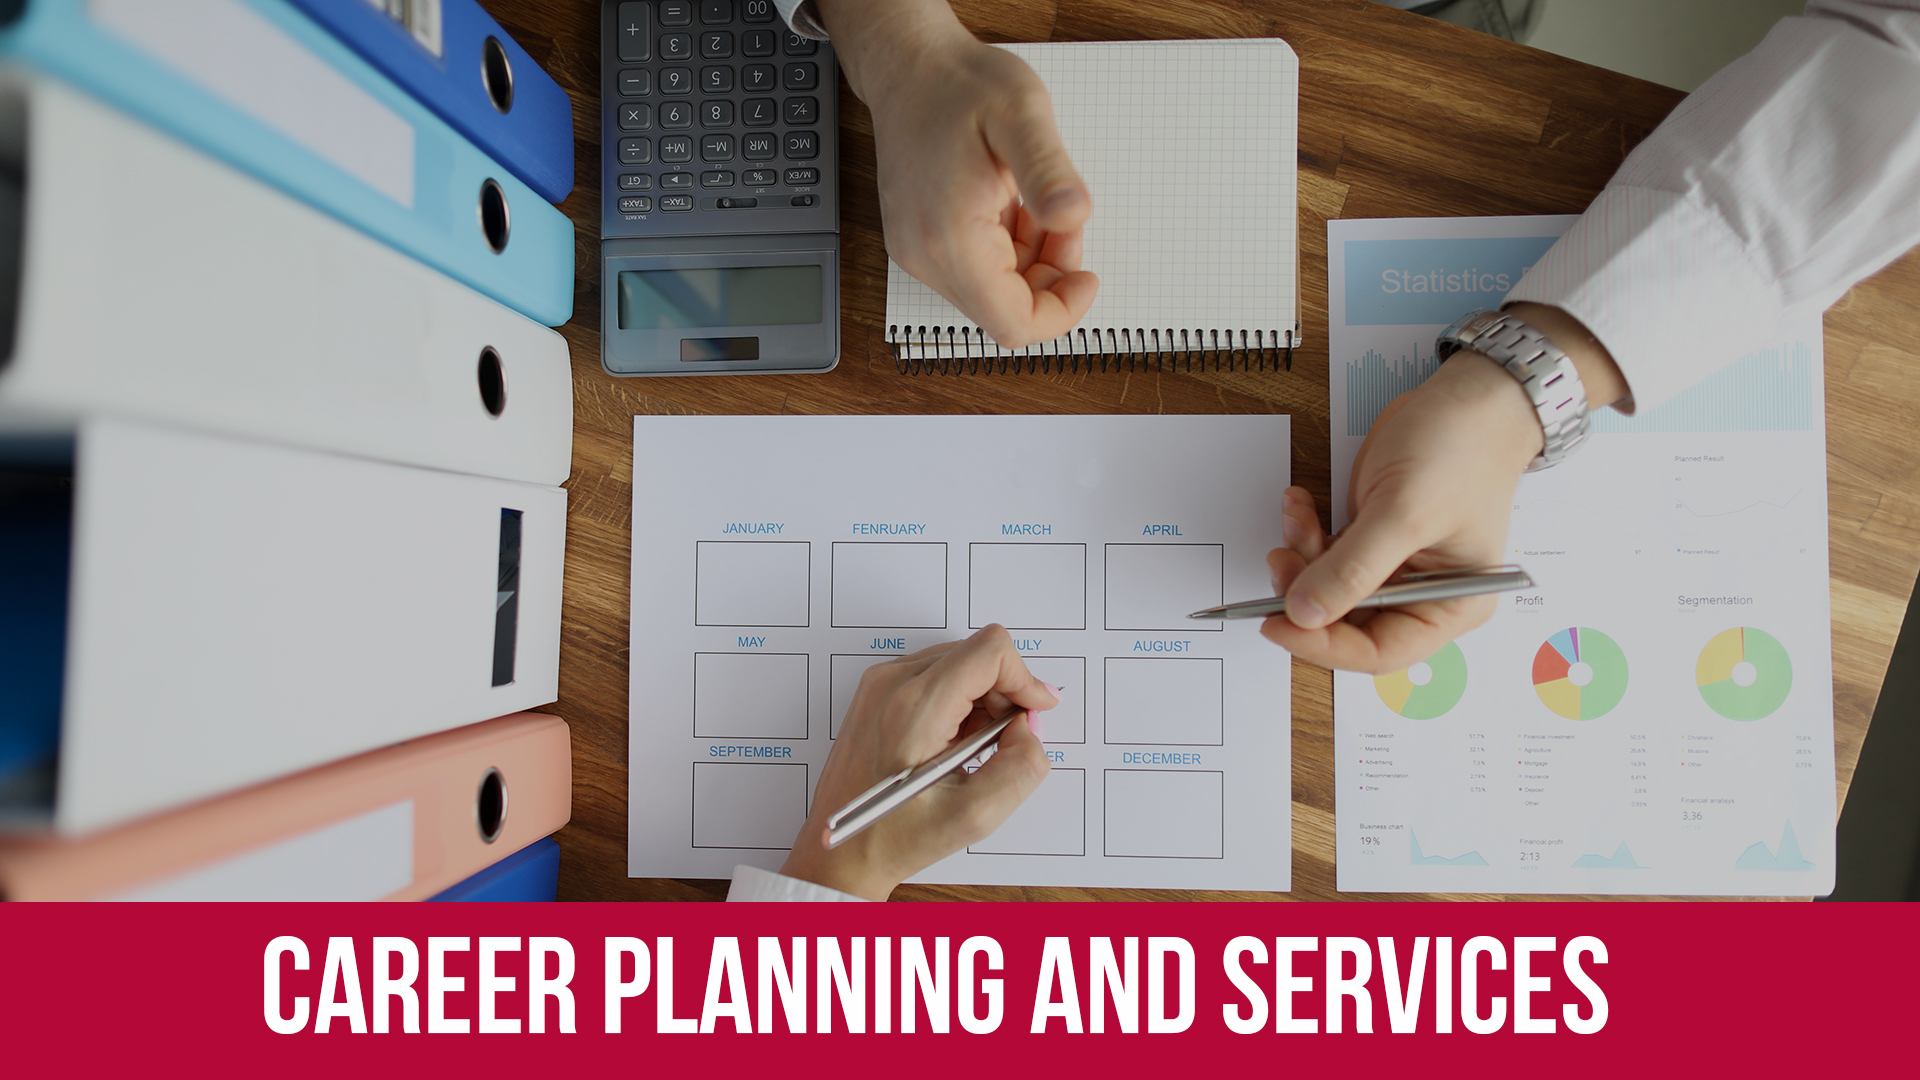 RVU Career Planning and Services